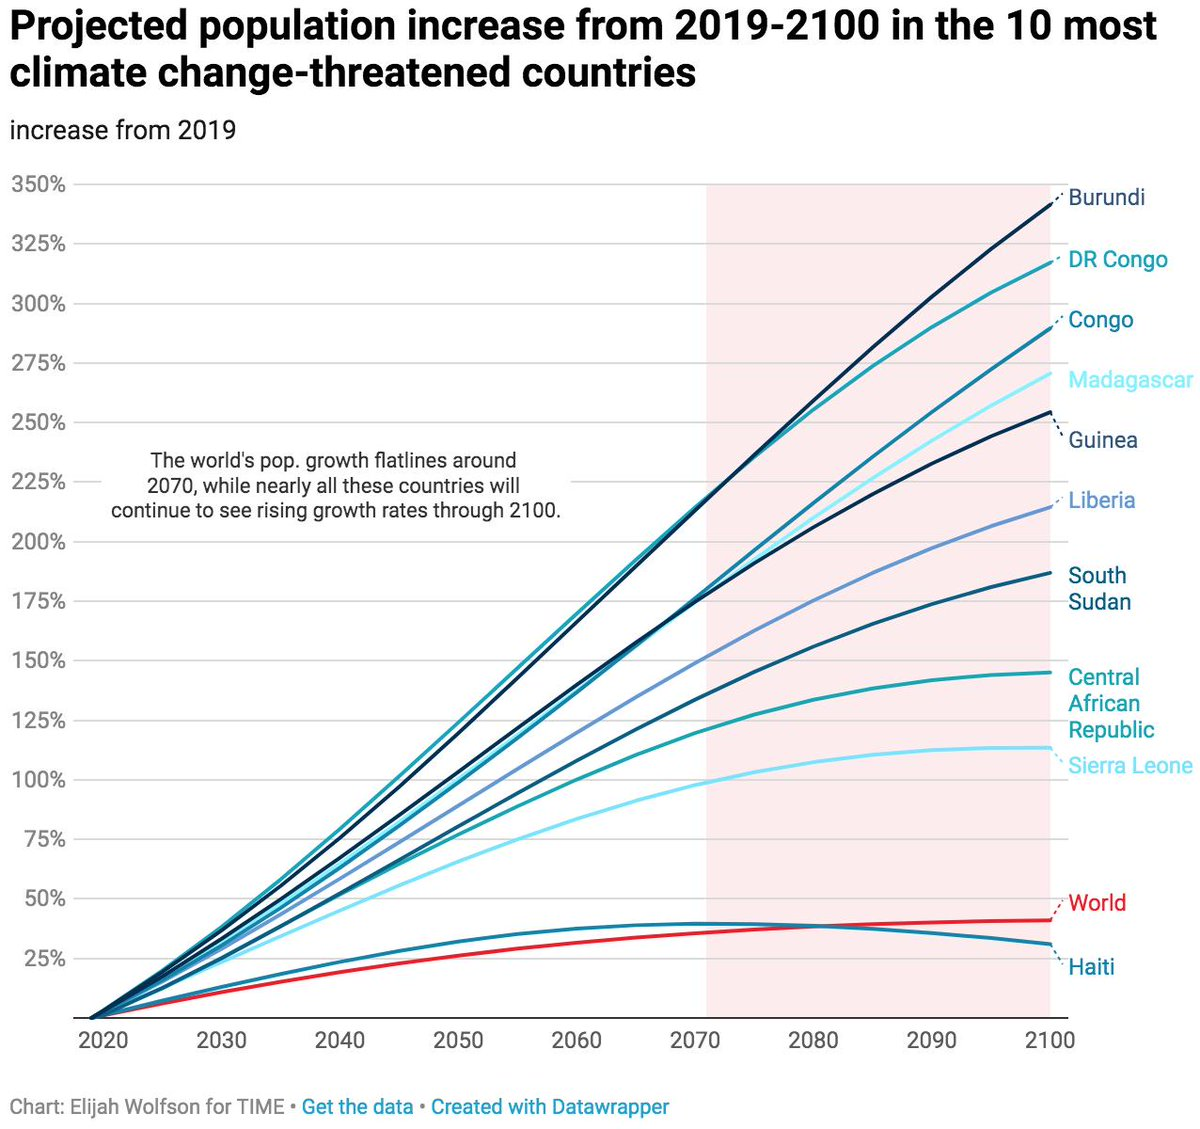 The 10 countries most vulnerable to climate change will experience population booms in the coming decades https://t.co/o0mLEmudxG https://t.co/c48S0x1qBW